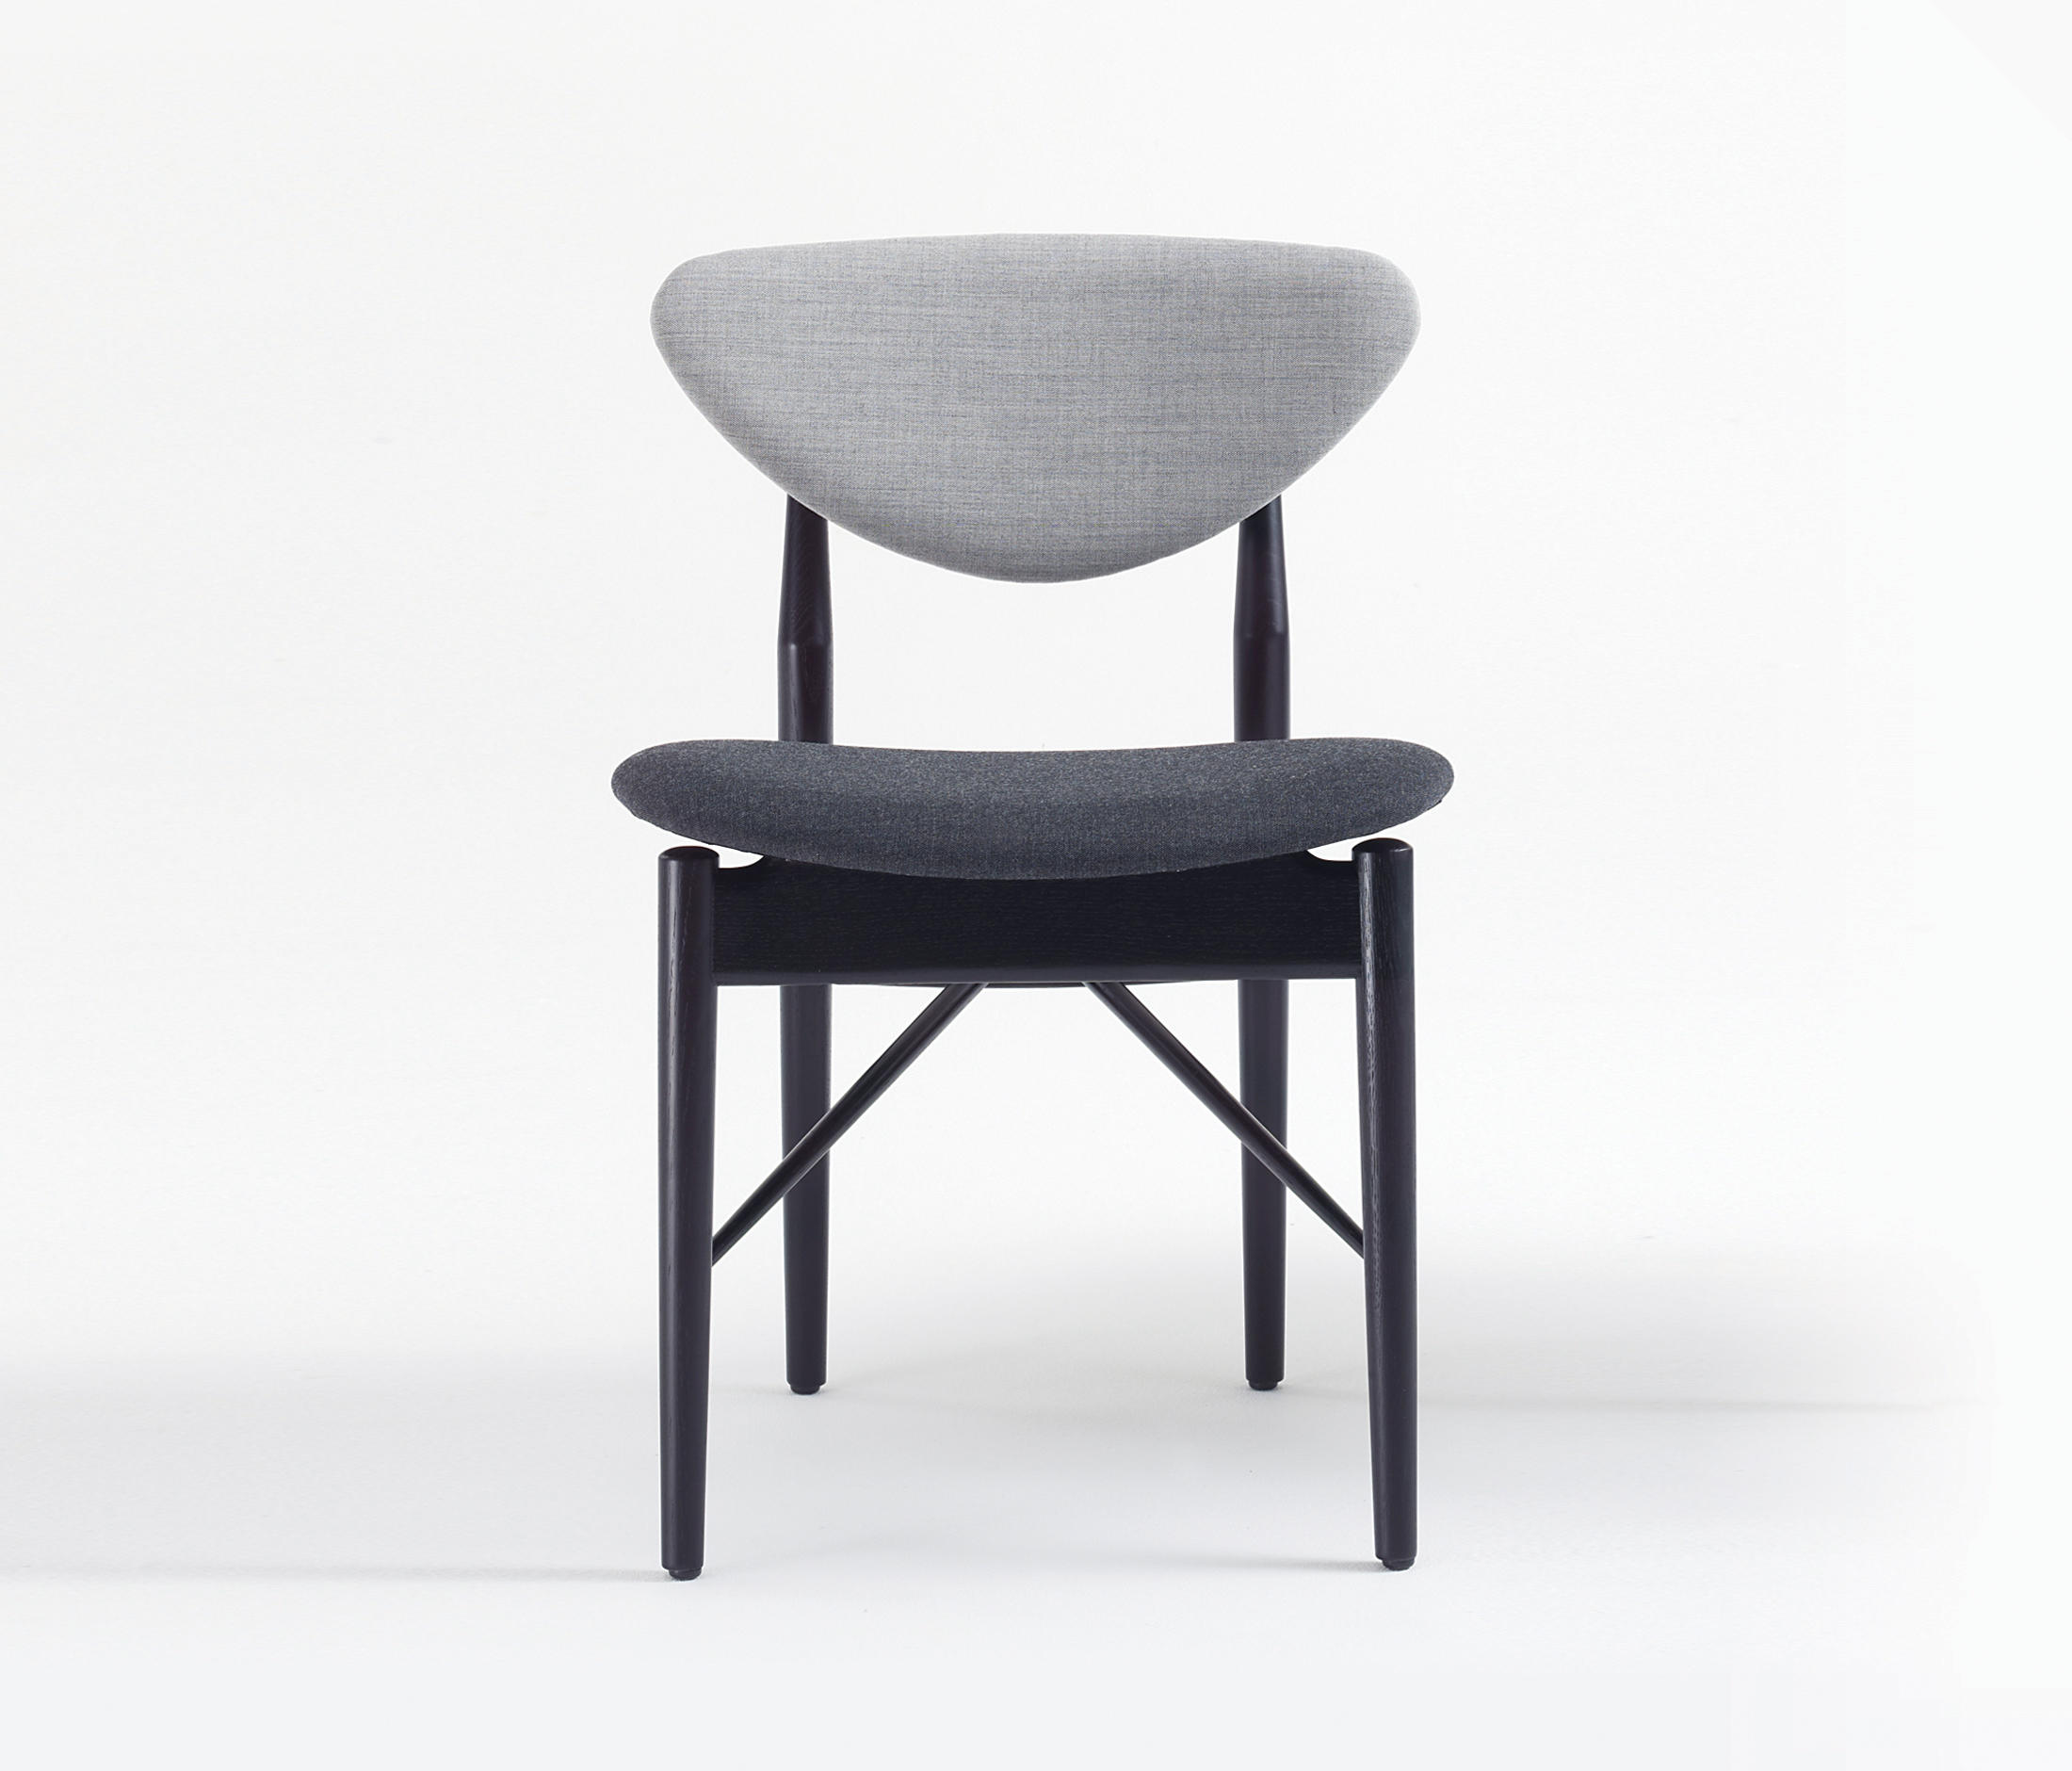 108 DINING CHAIR Restaurant chairs from onecollection